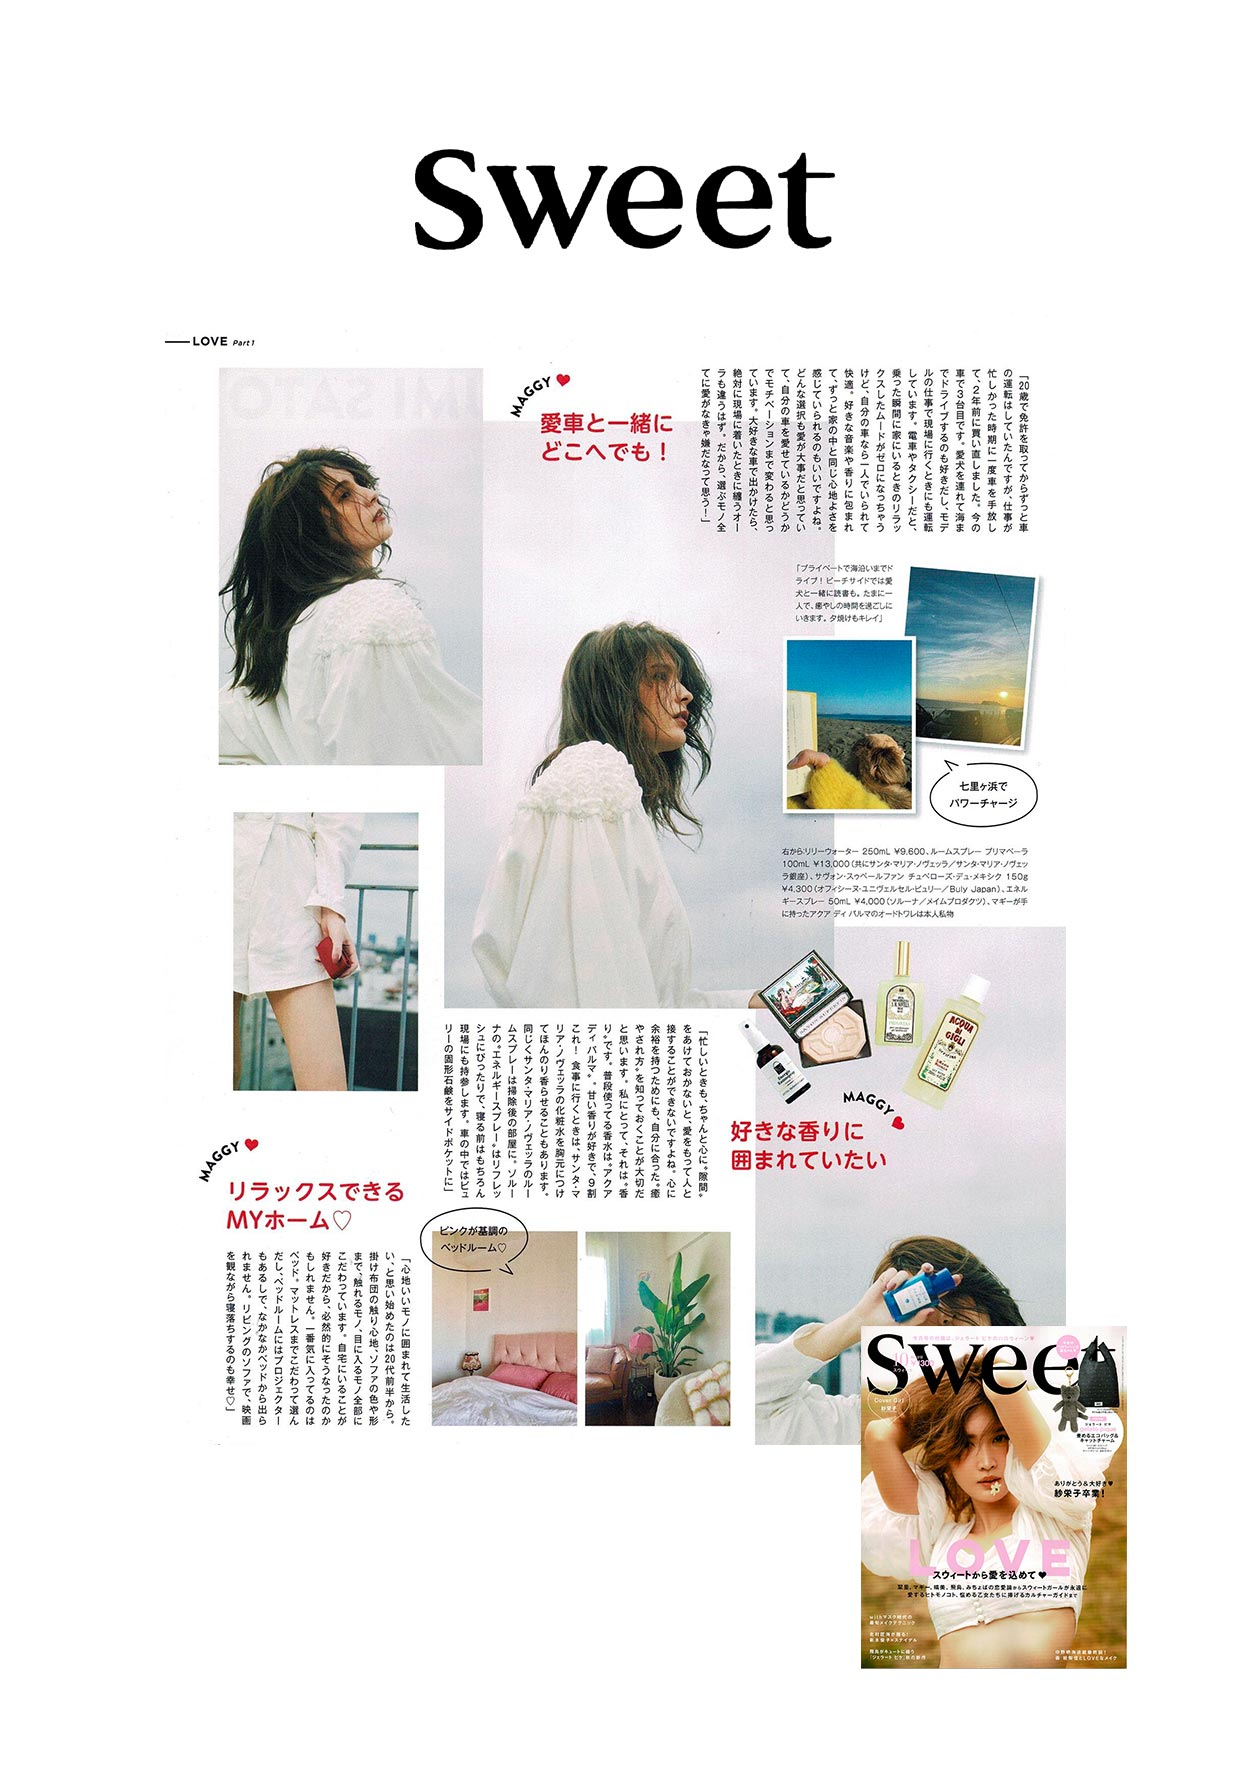 melampo press on sweet Japan magazine - photo 2